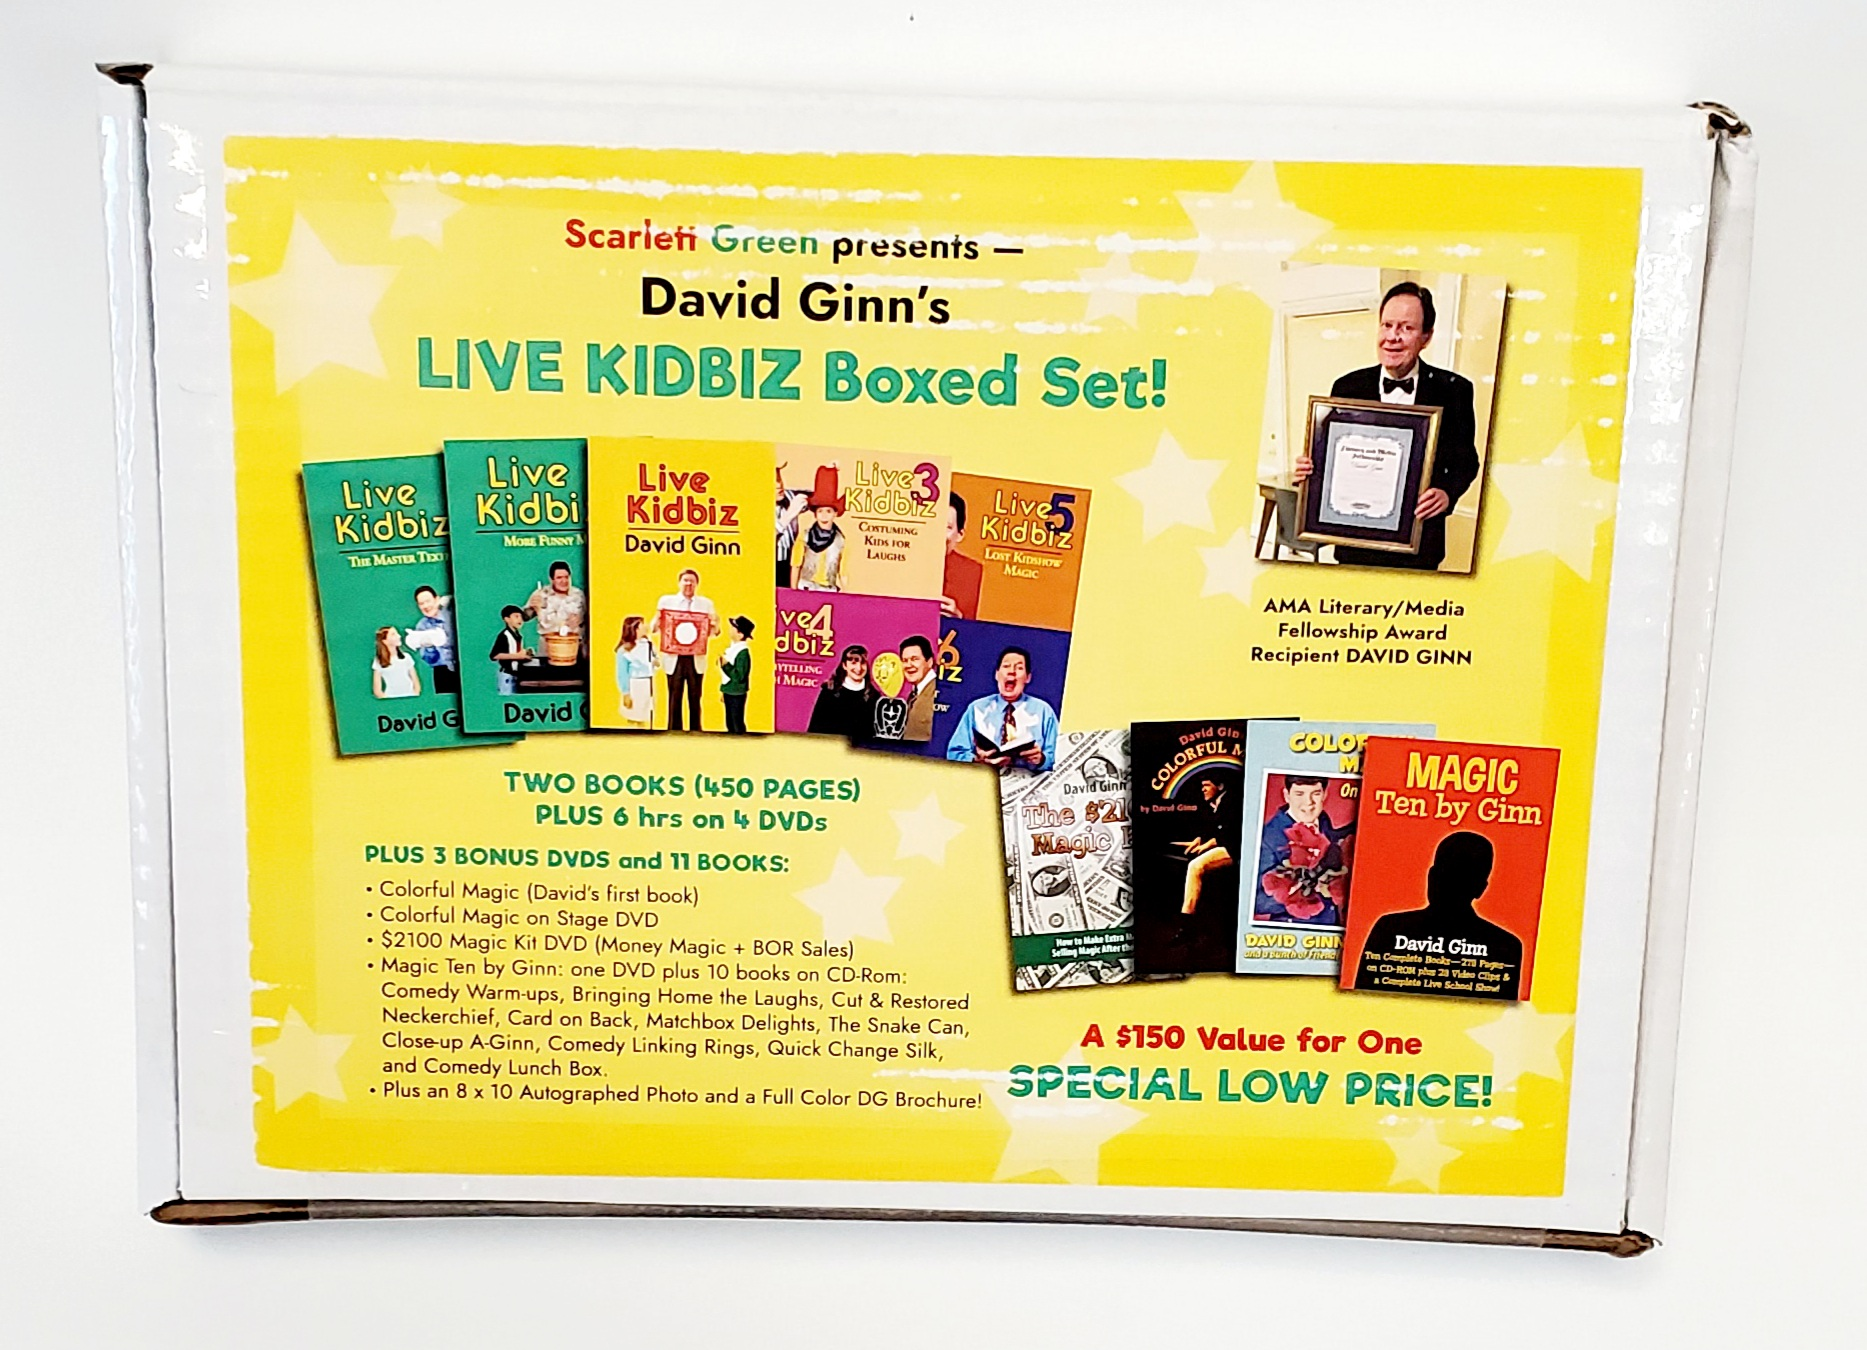 Live Kidbiz Boxed Set - David Ginn